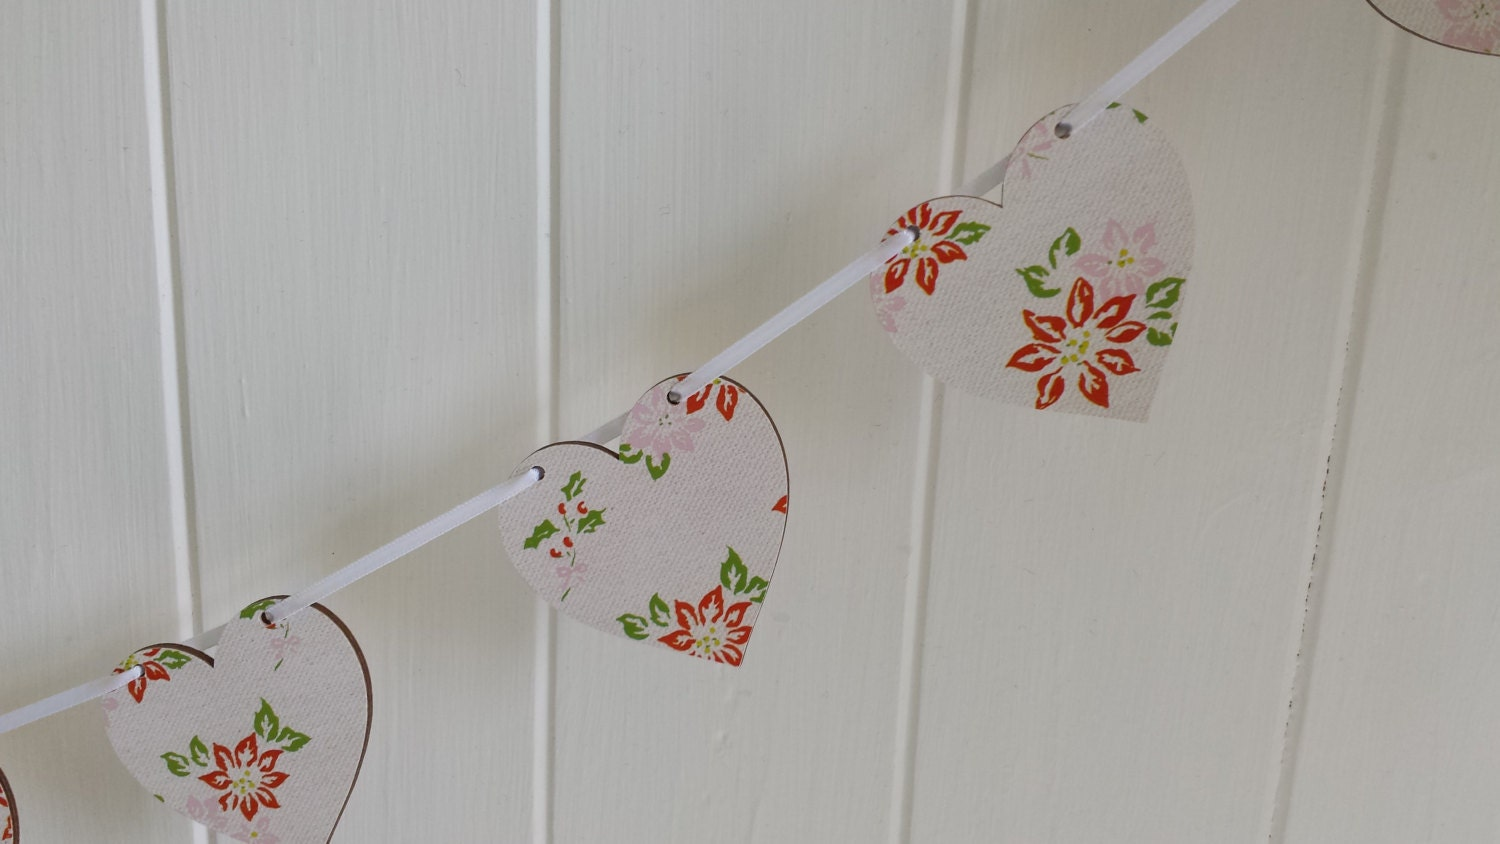 Hand made decoupaged wooden heart Christmas bunting featuring a vintage poinsettia design with a modern feel